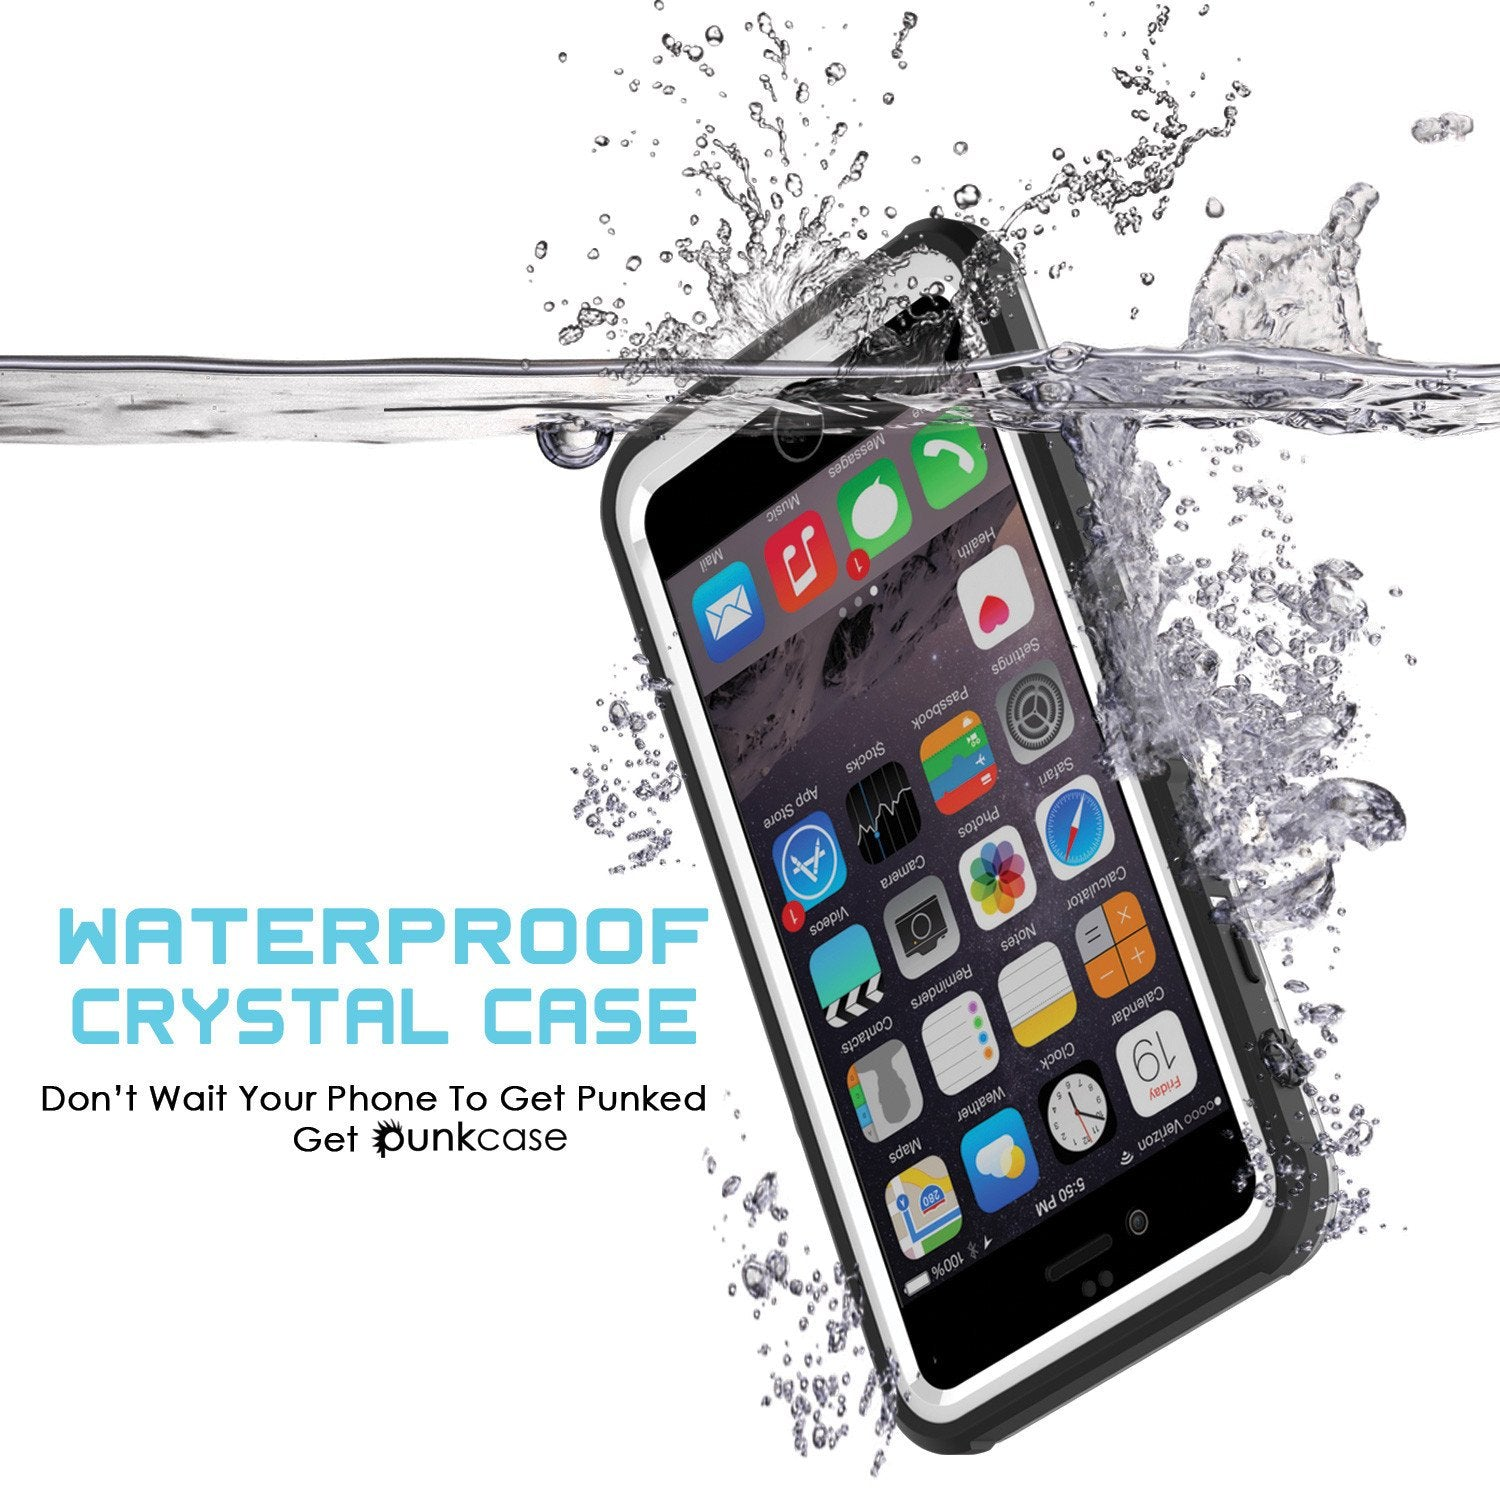 iPhone 6+/6S+ Plus Waterproof Case, PUNKcase CRYSTAL White W/ Attached Screen Protector | Warranty - PunkCase NZ